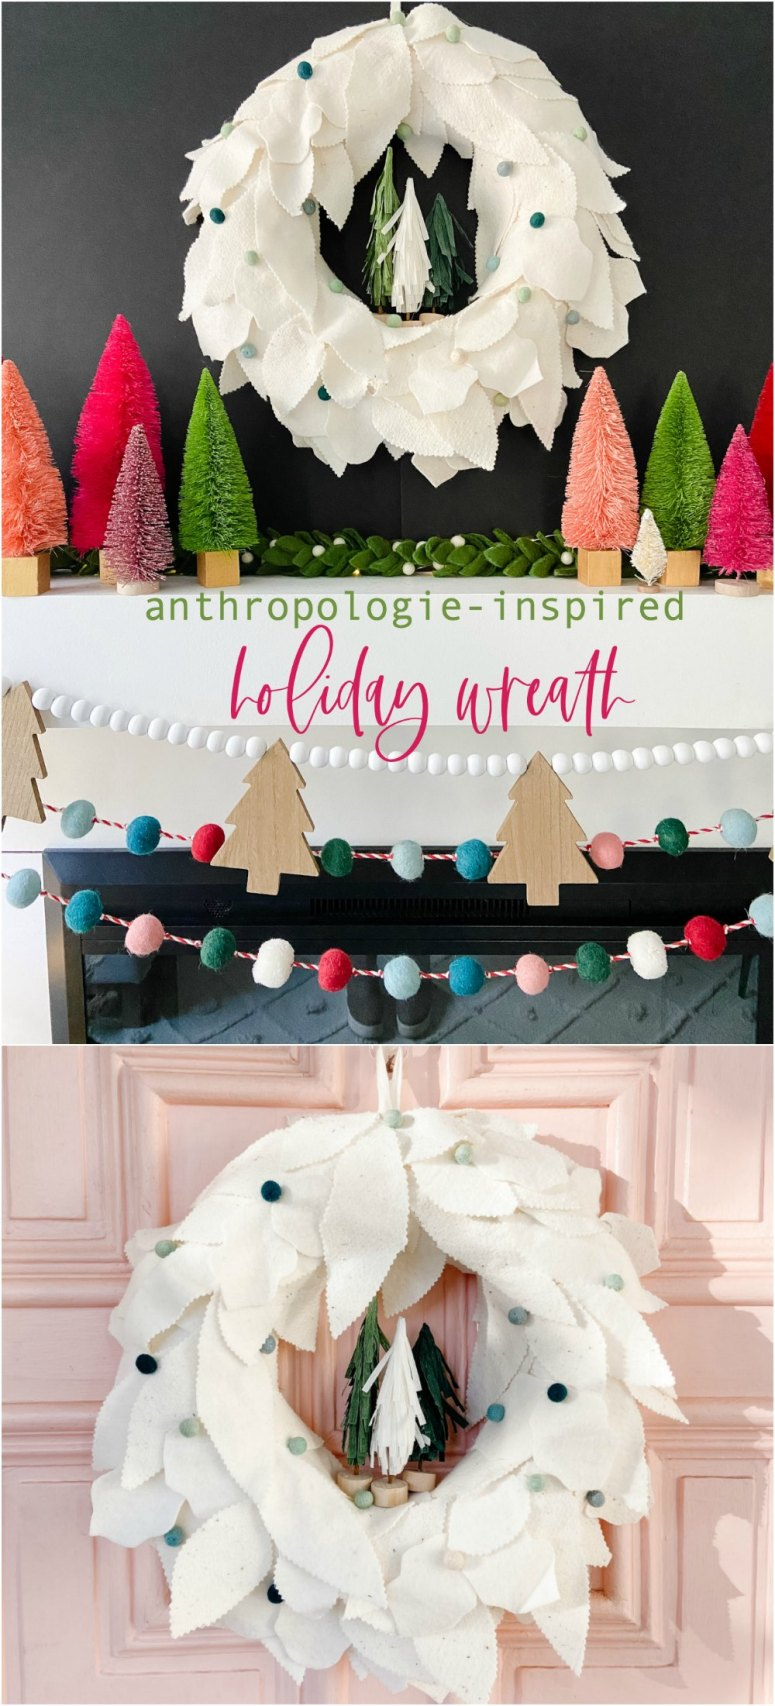 Anthropologie Inspired Felt Holday Wreath